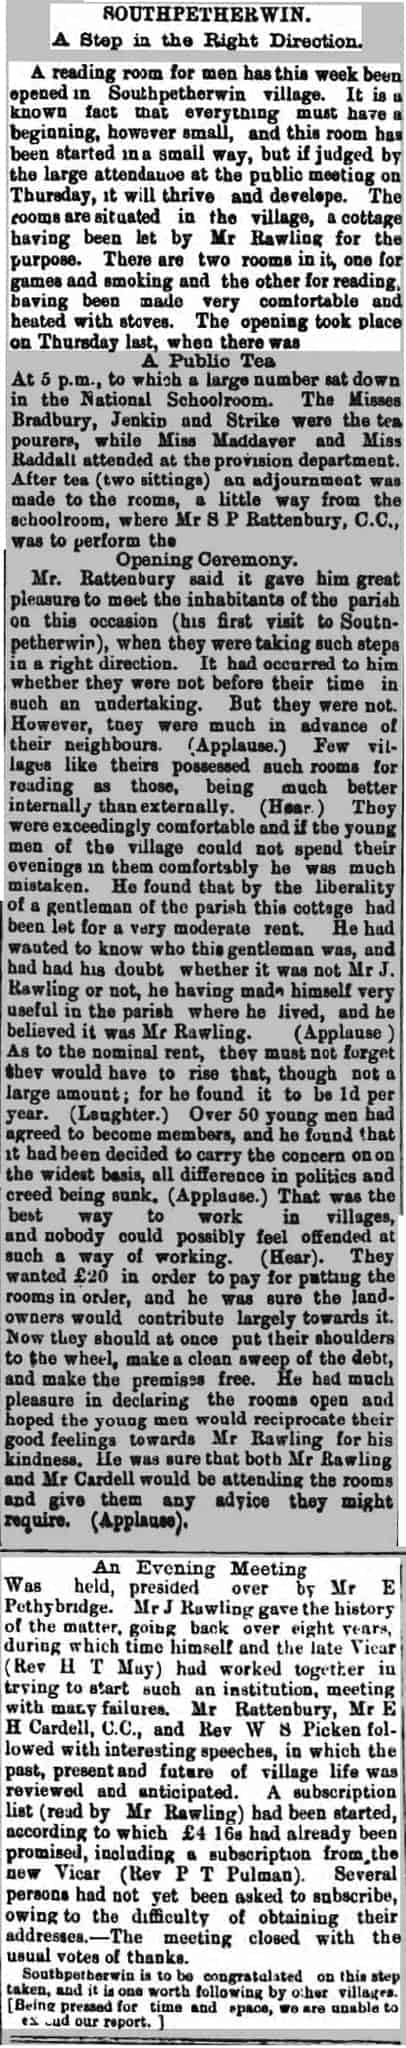 South Petherwin reading room article from the Cornish Devon Post 12th of February 1892